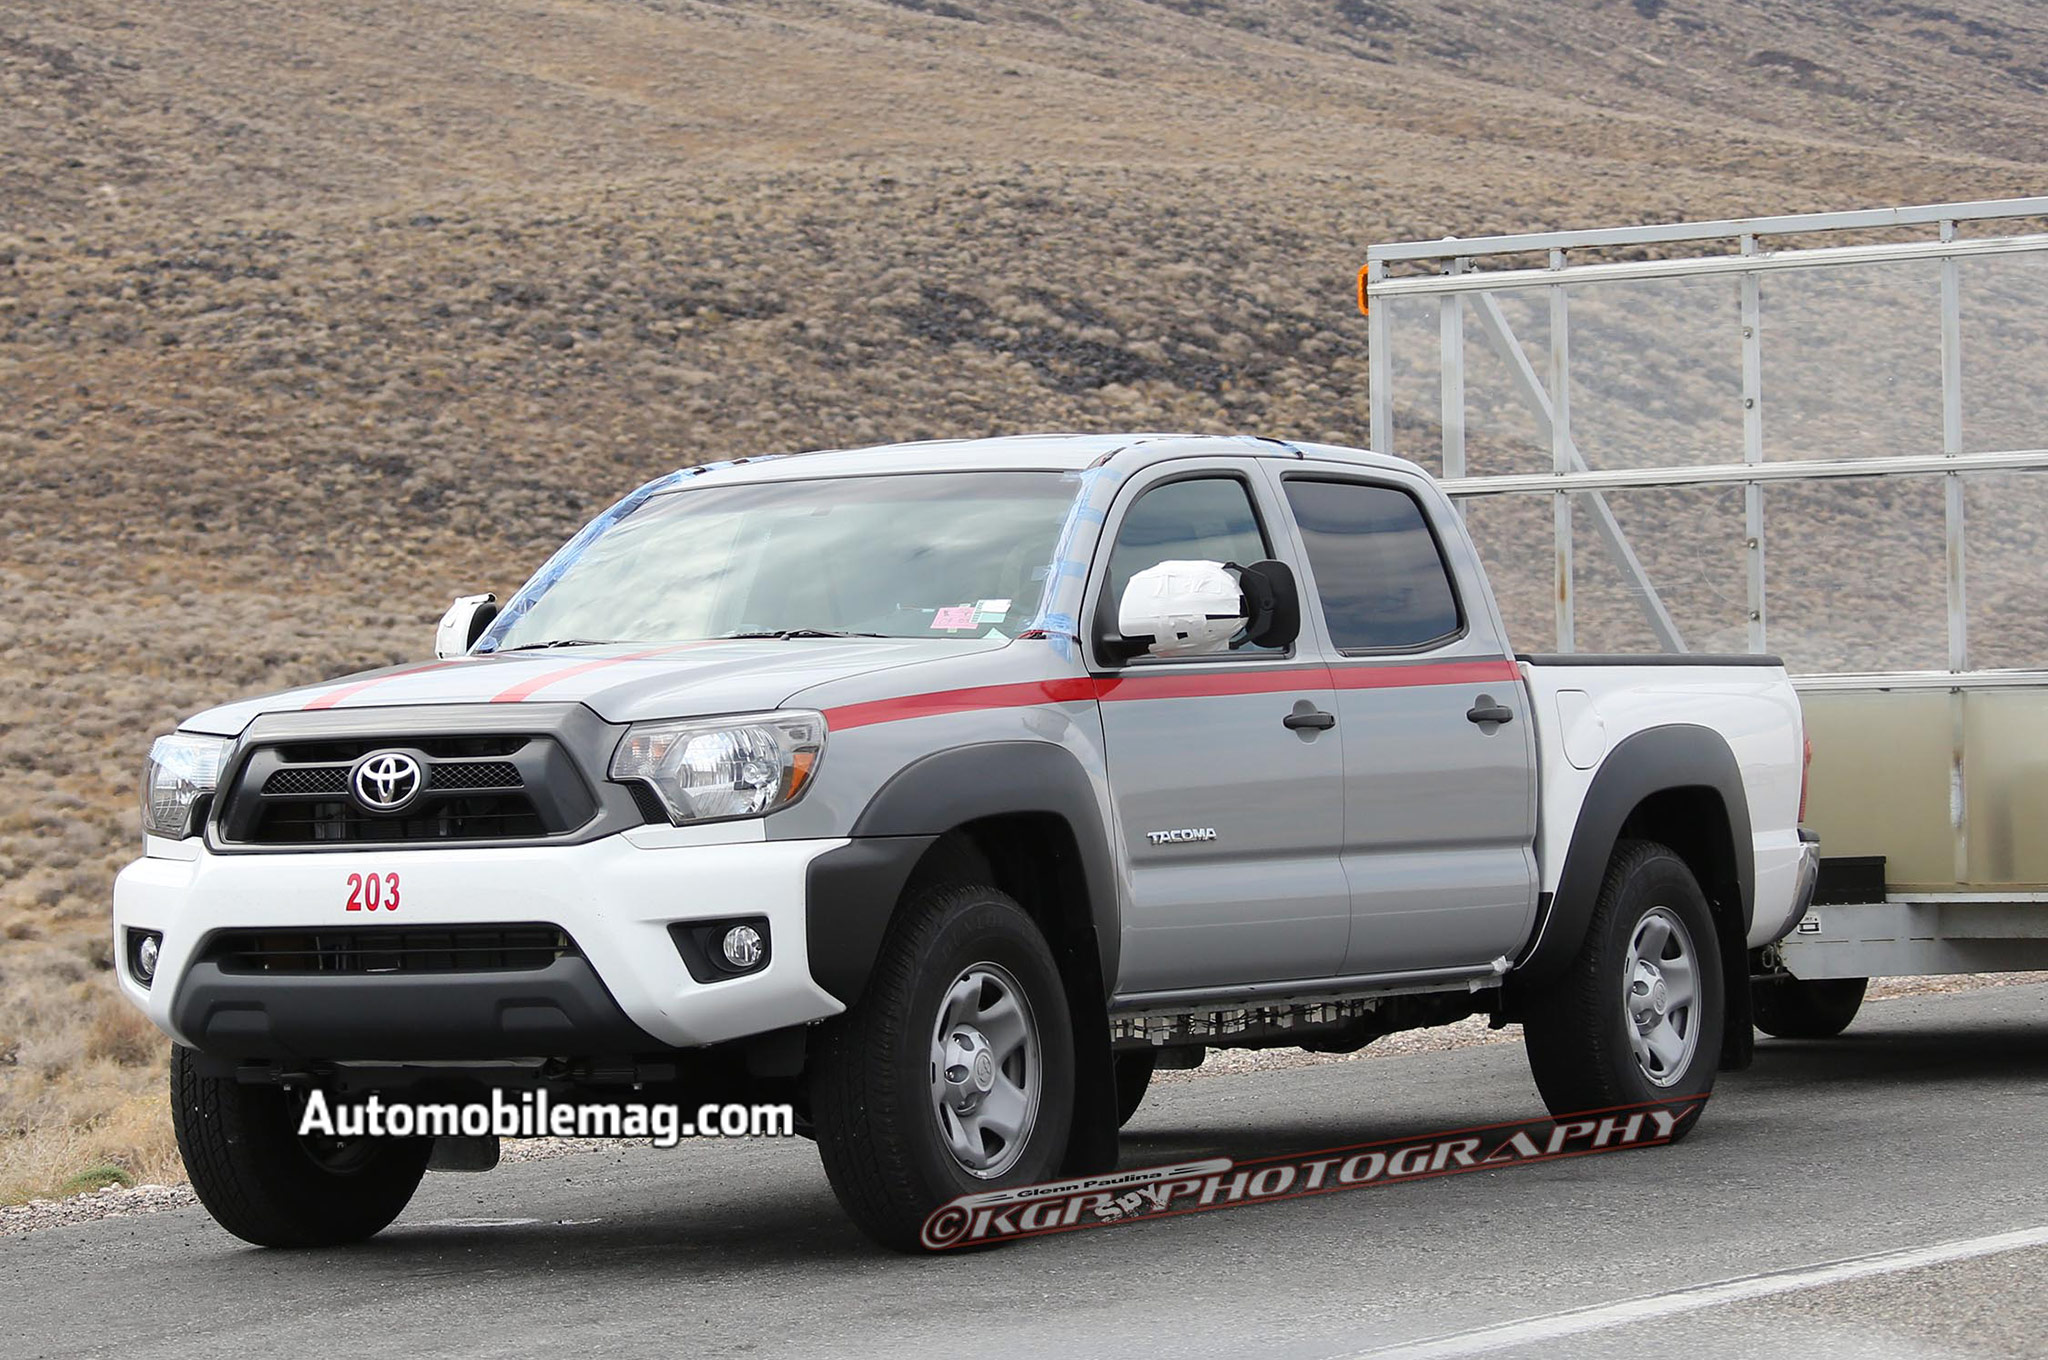 2016 Toyota Tacoma Test Mule Spied For the First Time